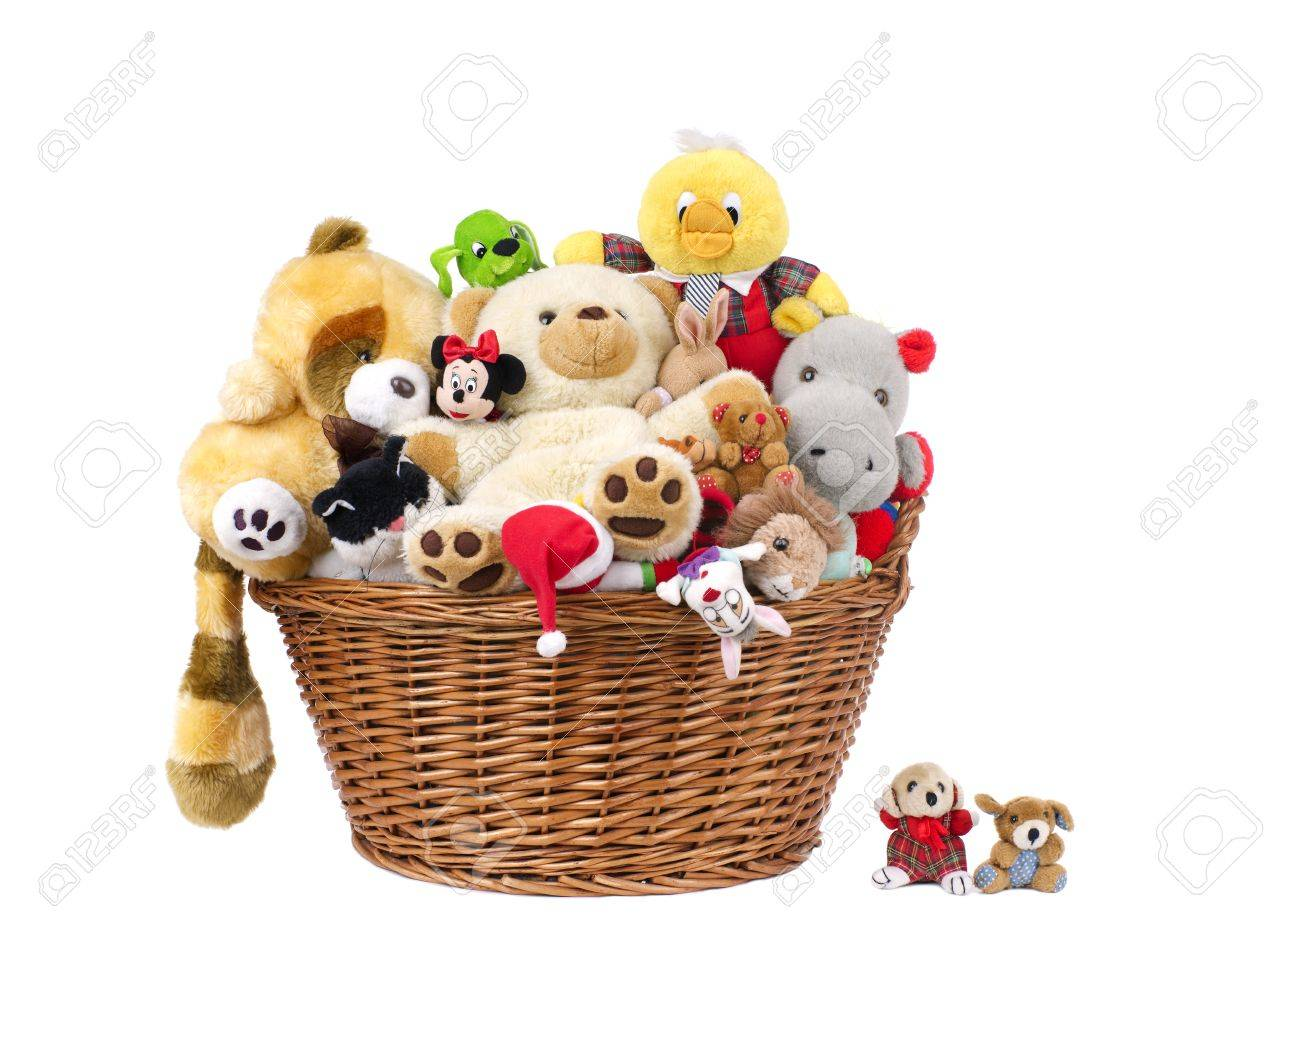 Stuffed animal toys in a basket isolated on a white - 35879986